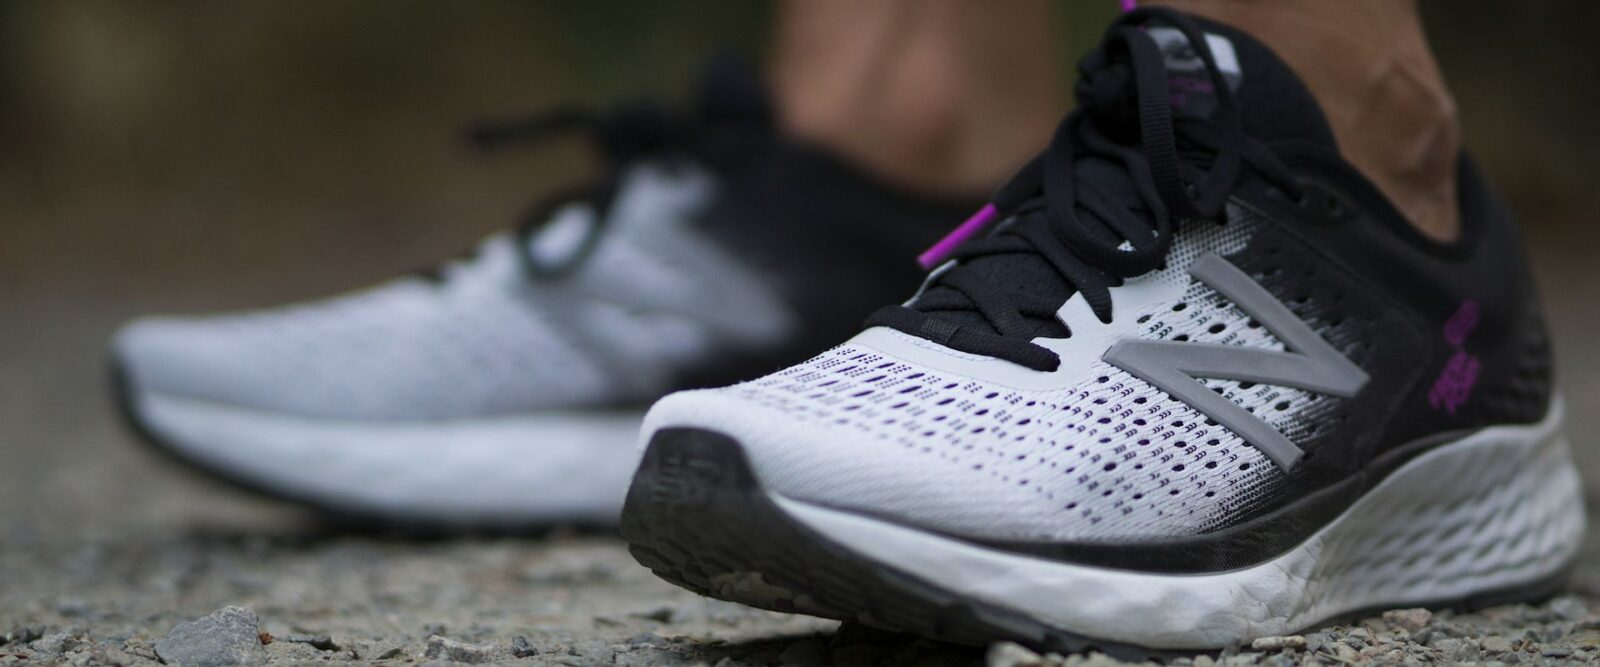 Types Of Running Shoes For Pronation